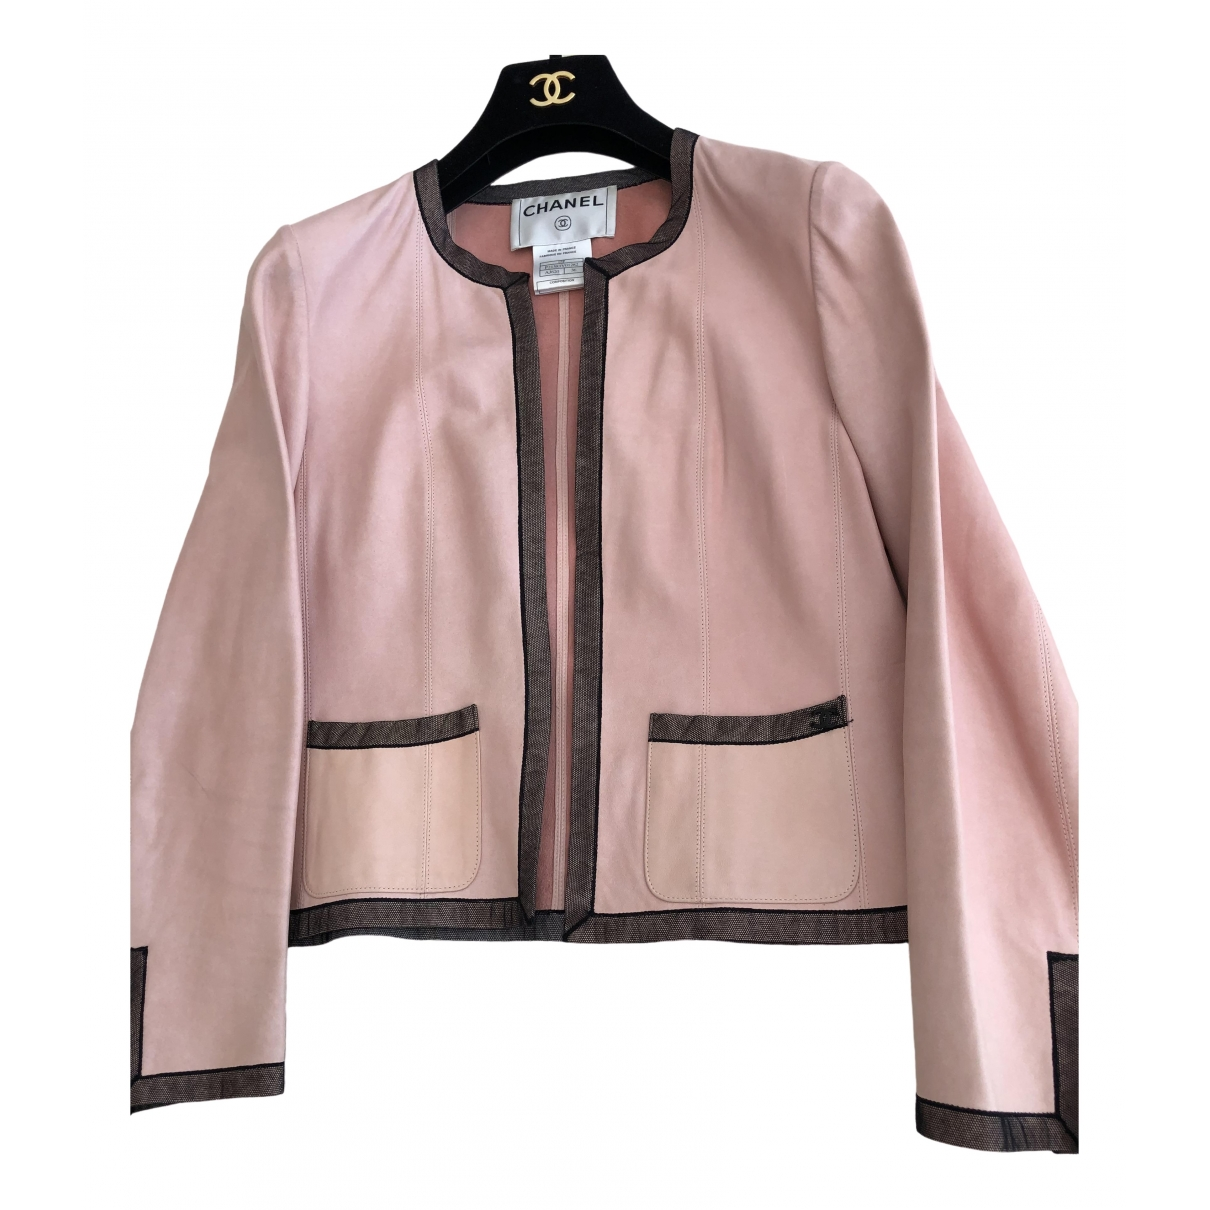 Chanel \N Pink Leather jacket for Women 36 FR